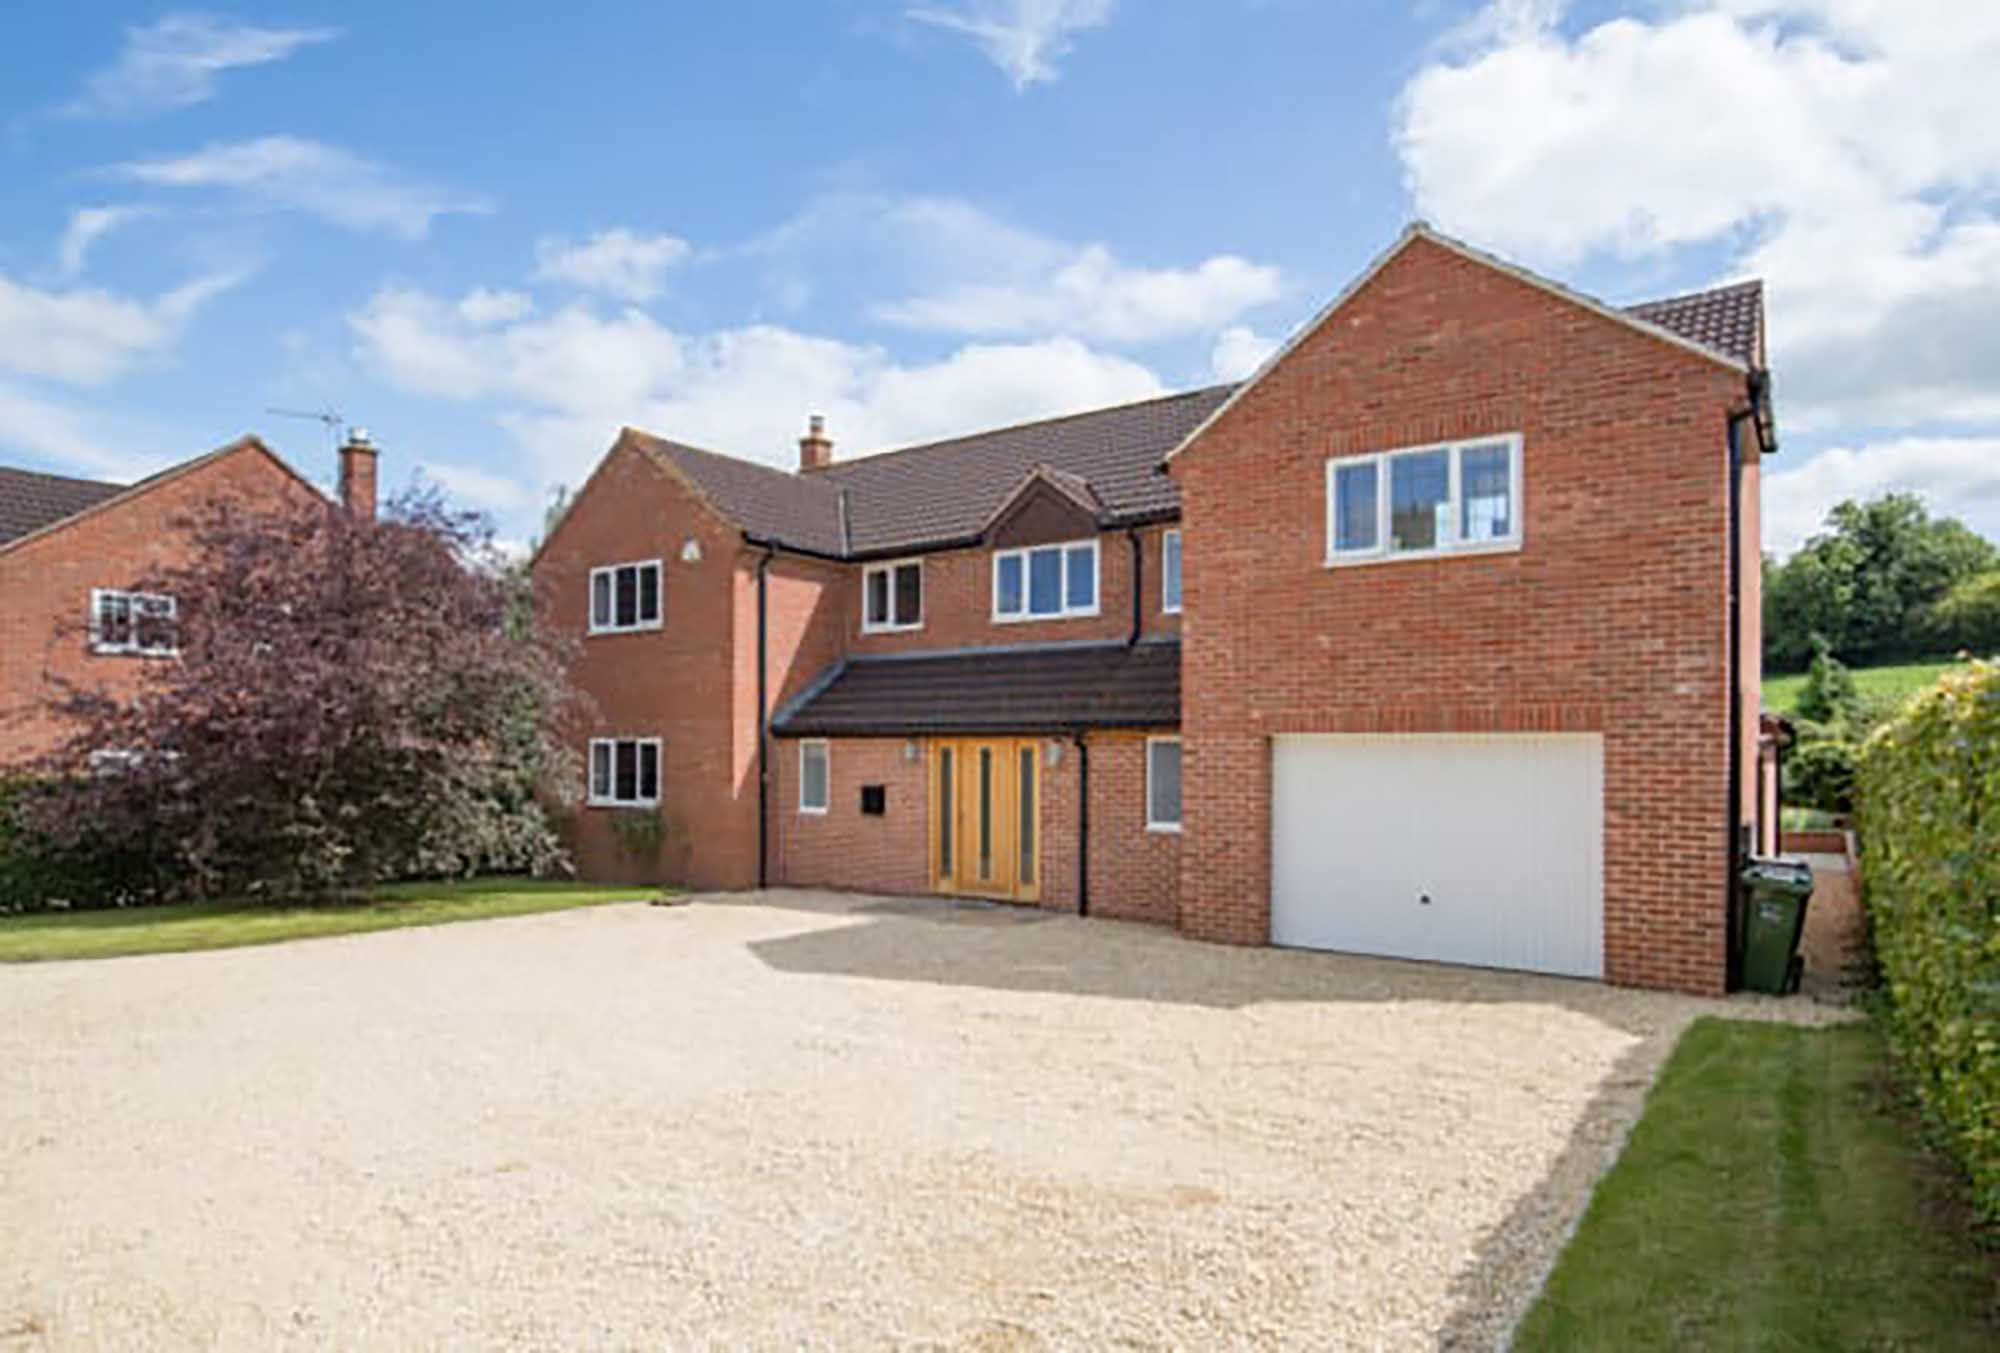 Bruton- very light and spacious house in good location